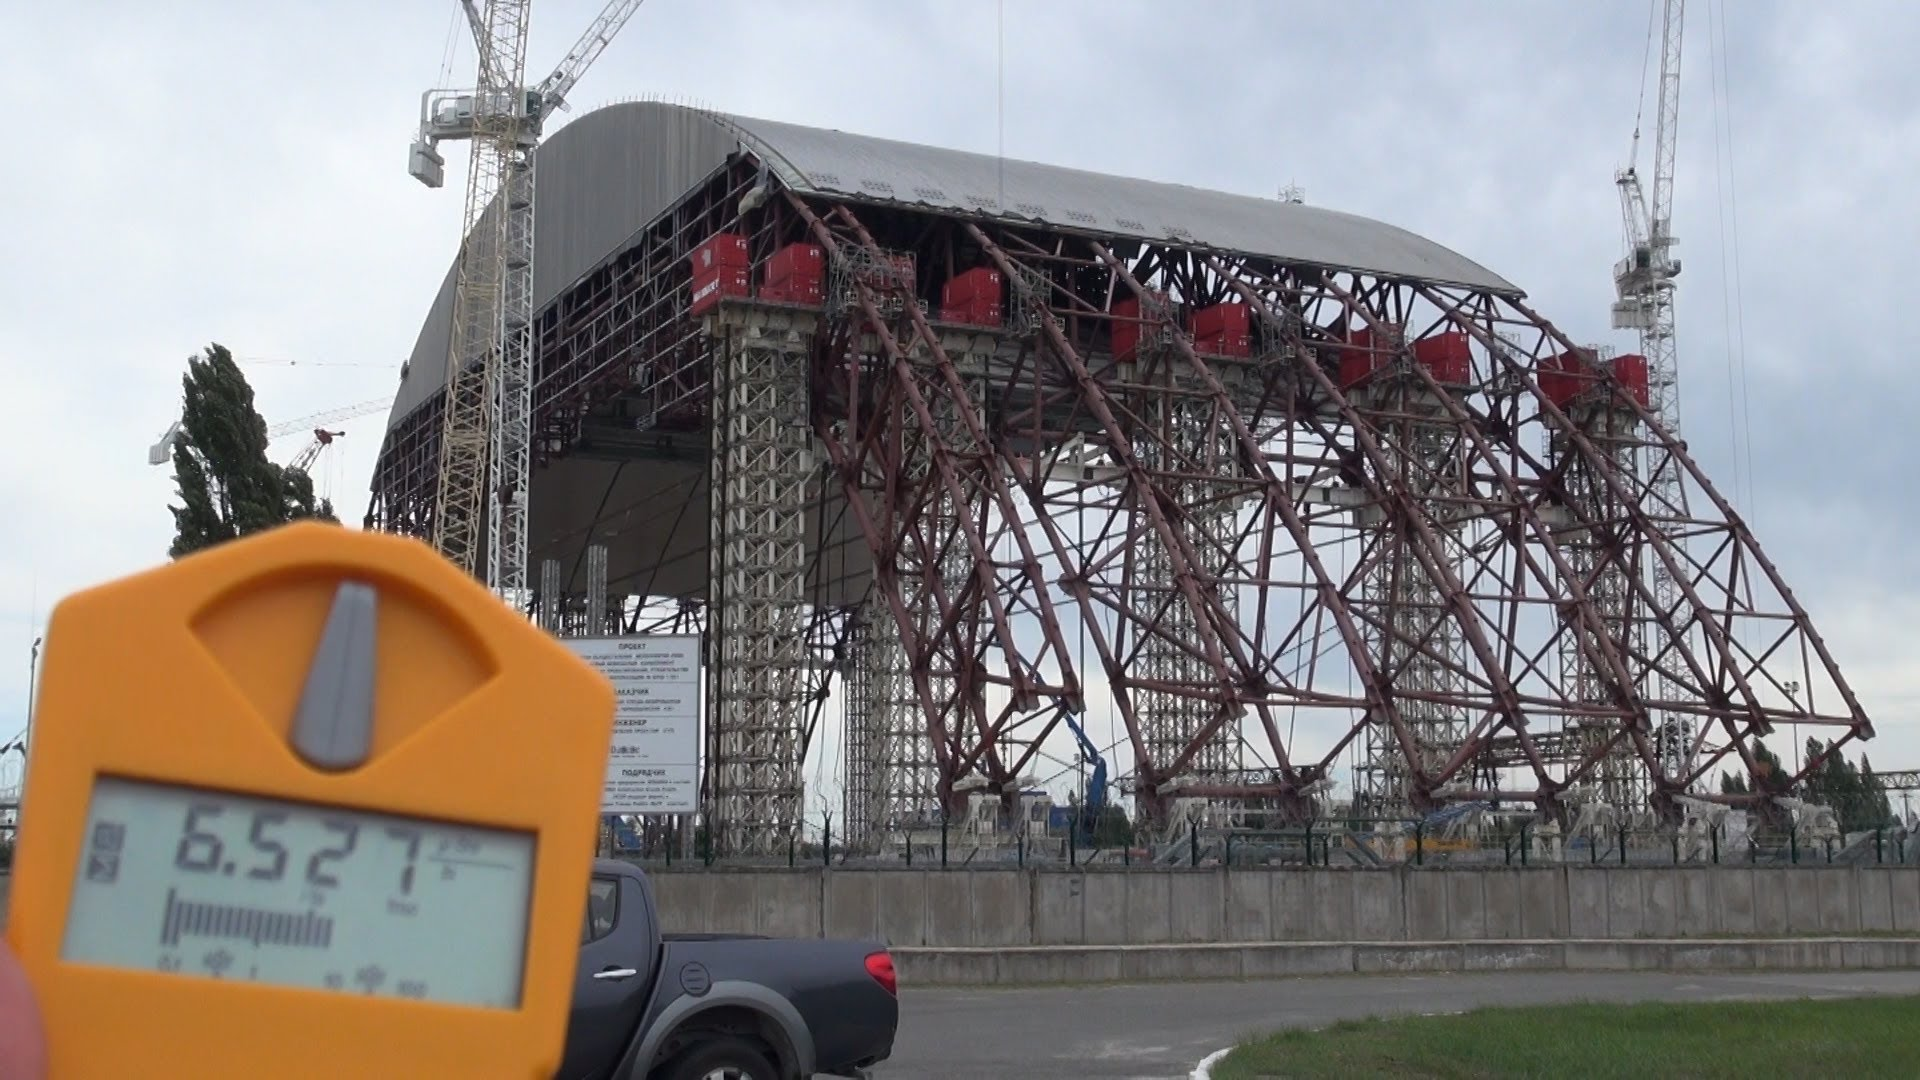 42 Facts About the Chernobyl Disaster